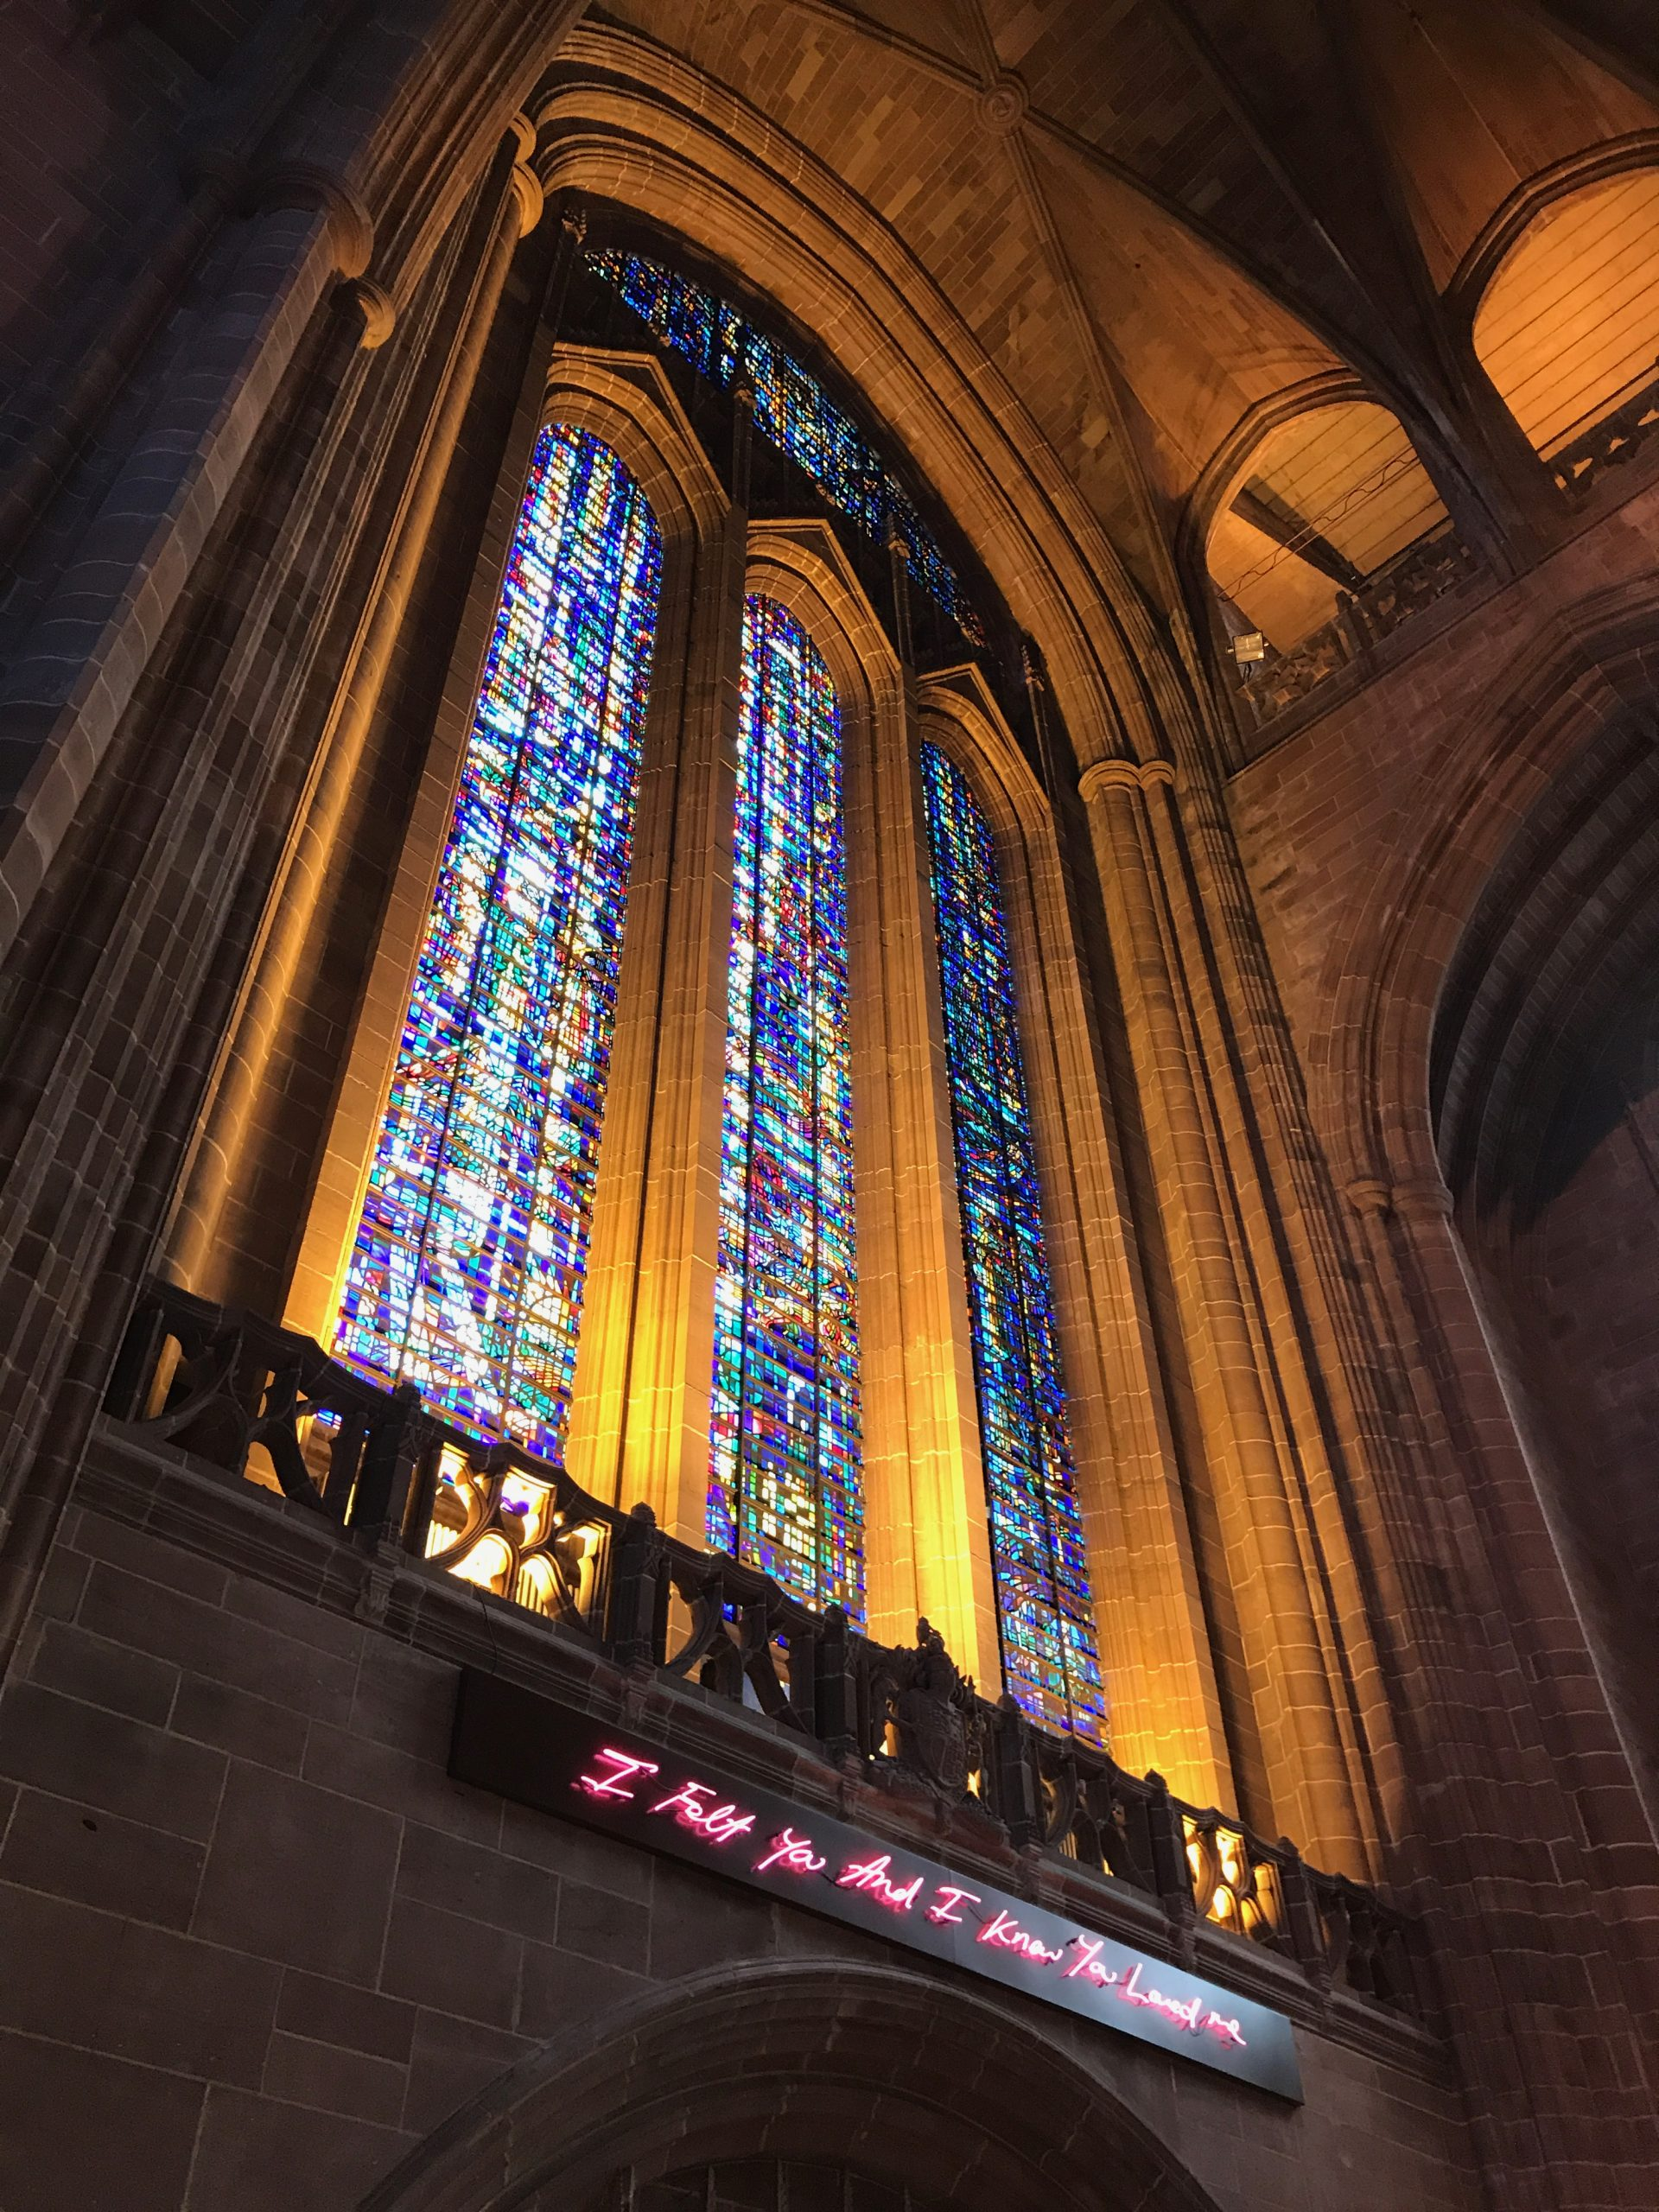 ‎⁨Liverpool Cathedral⁩, ⁨Liverpool⁩, ⁨United Kingdom⁩